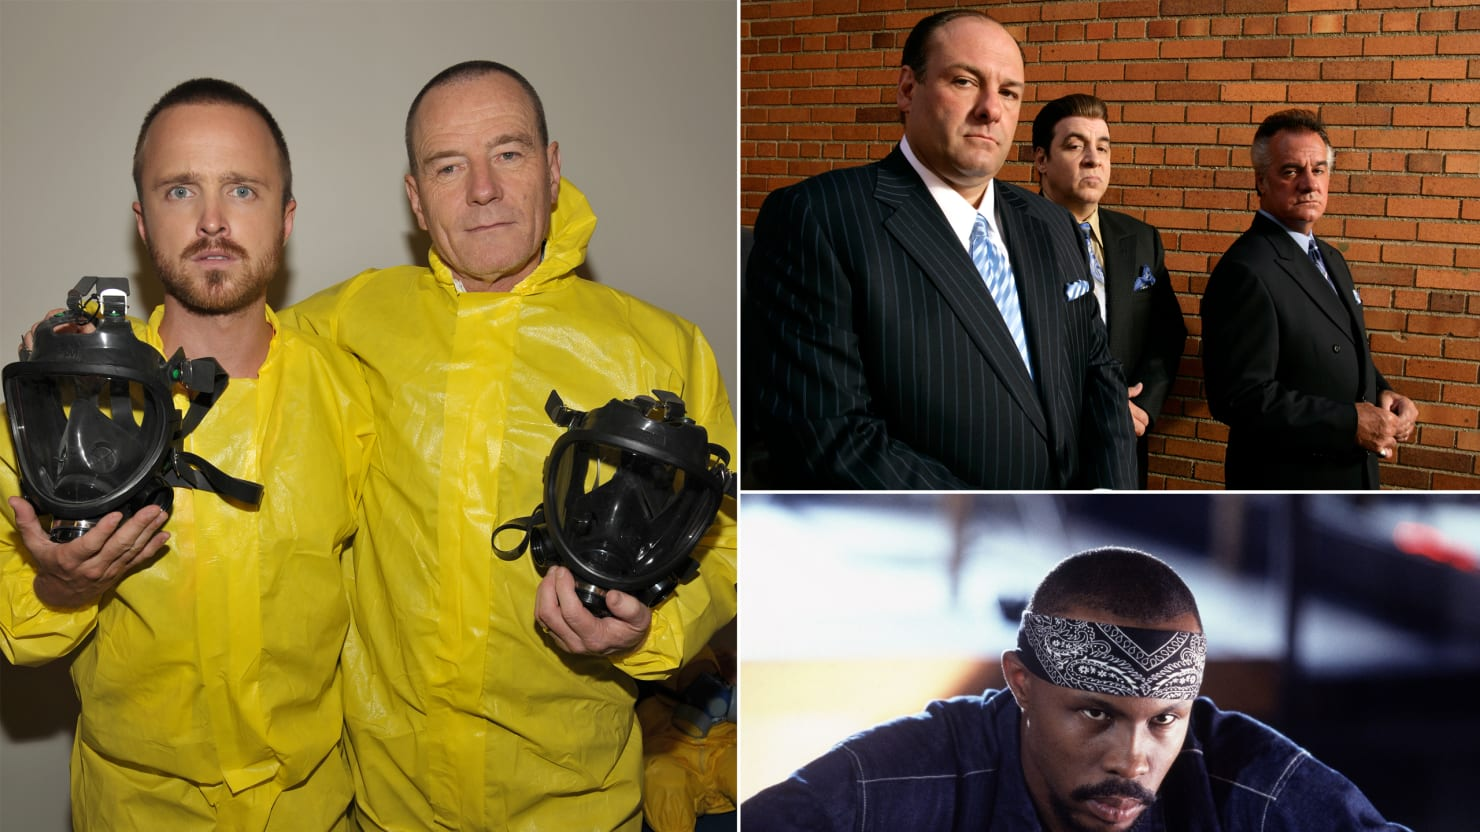 The 10 Most Essential TV Episodes from Sopranos, Breaking Bad